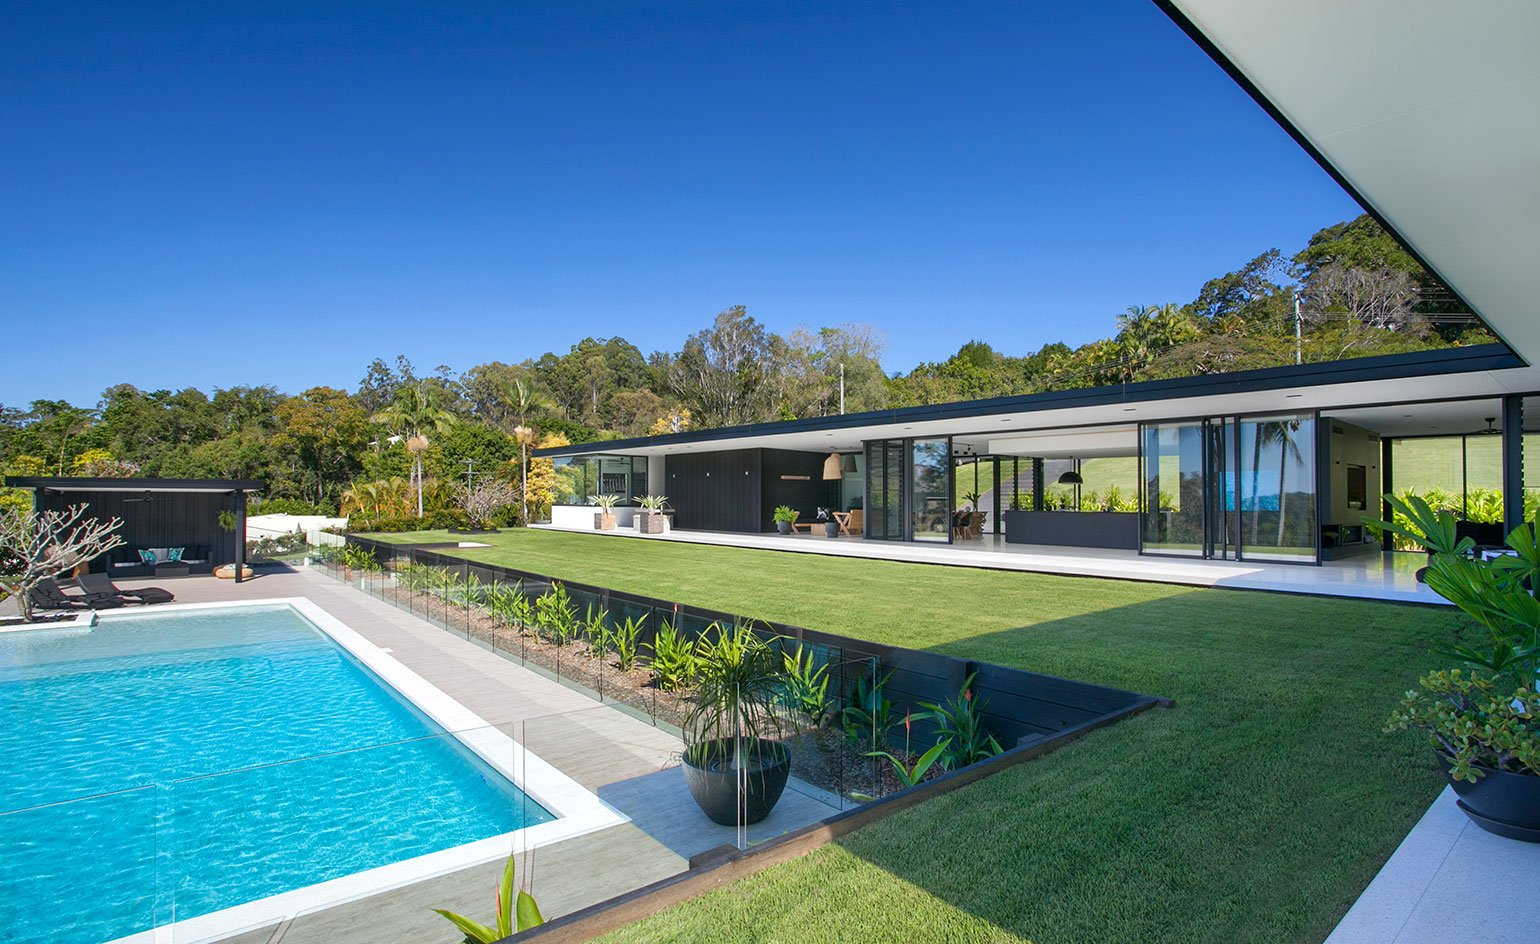 Contemporary house - architect Sarah Waller's Doonan Glass House - pool